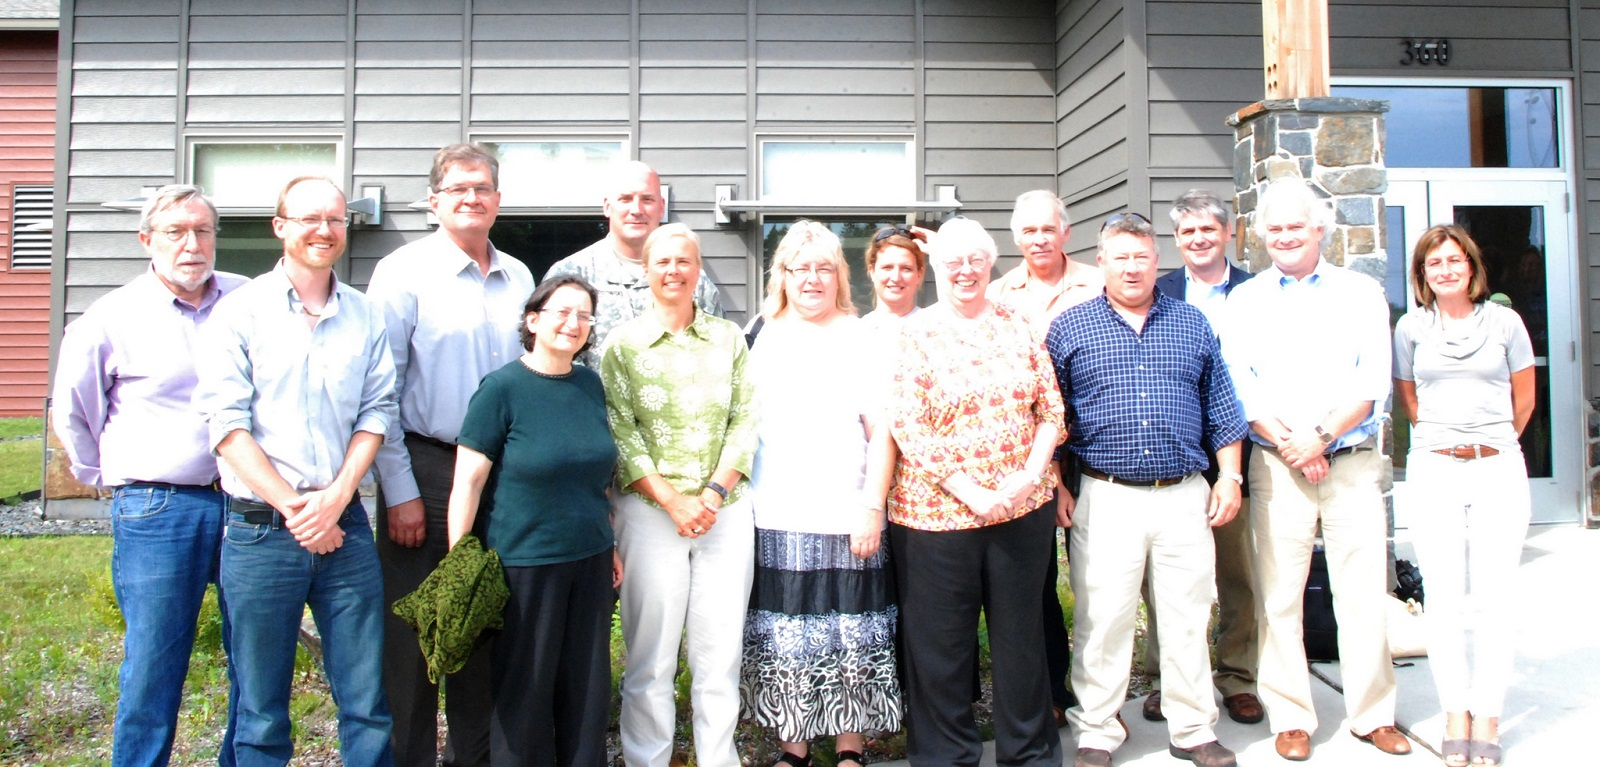 Some Board members before an August 2015 meeting